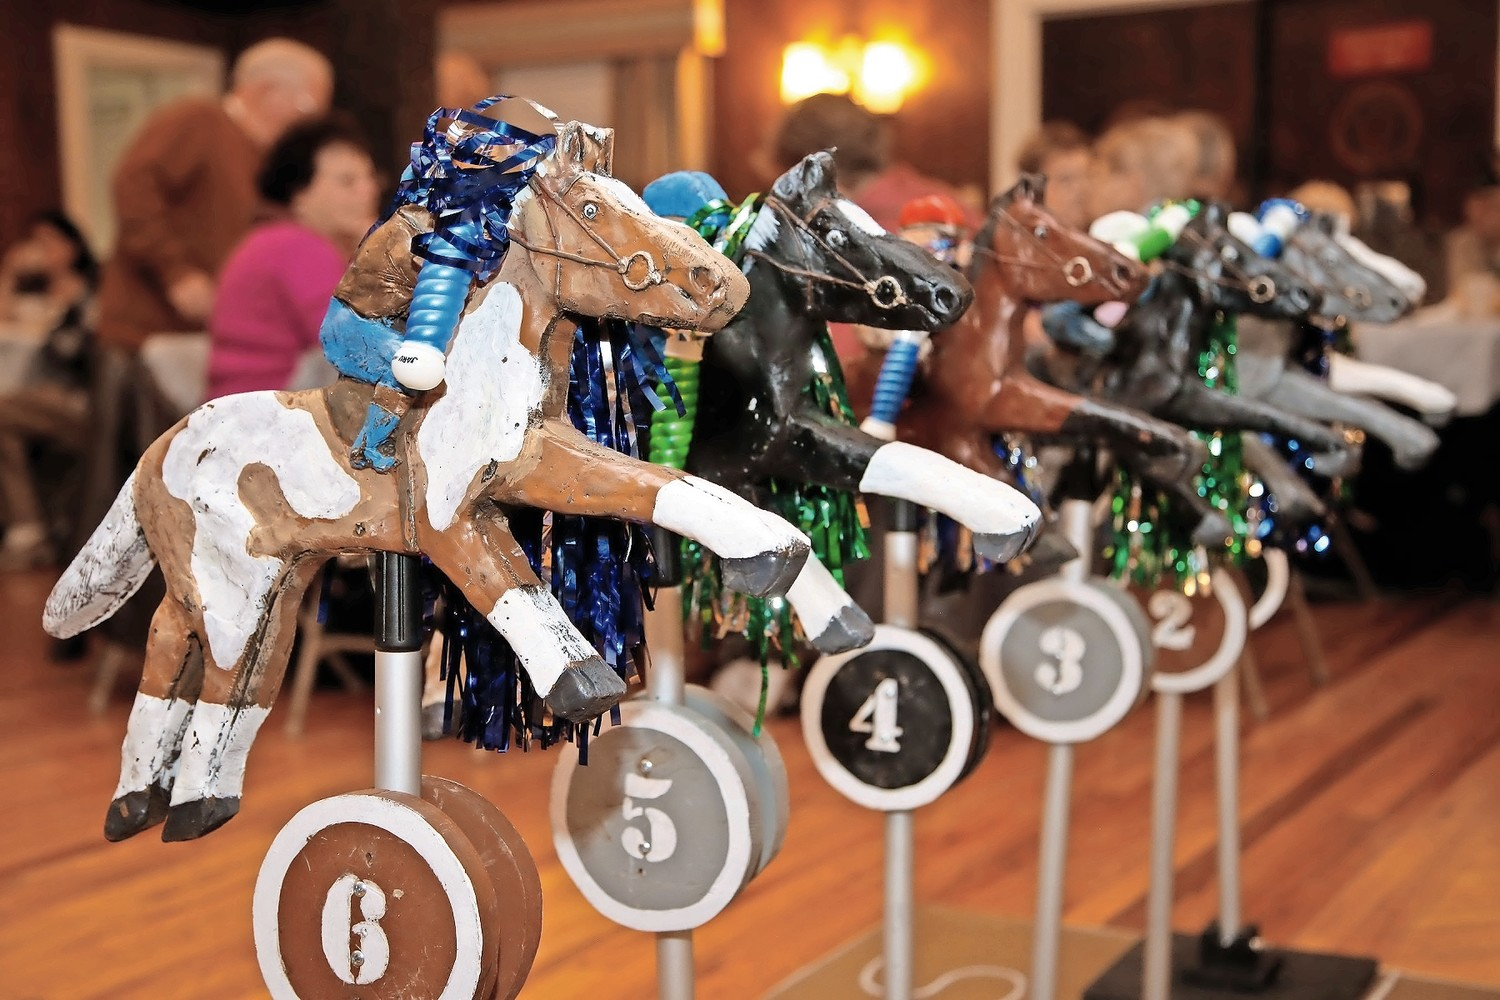 Wooden horses with names like Dragonheart and Mr. Speedy, lined up for some charitable racing at the Malverne American Legion Post 44 on Nov. 4.